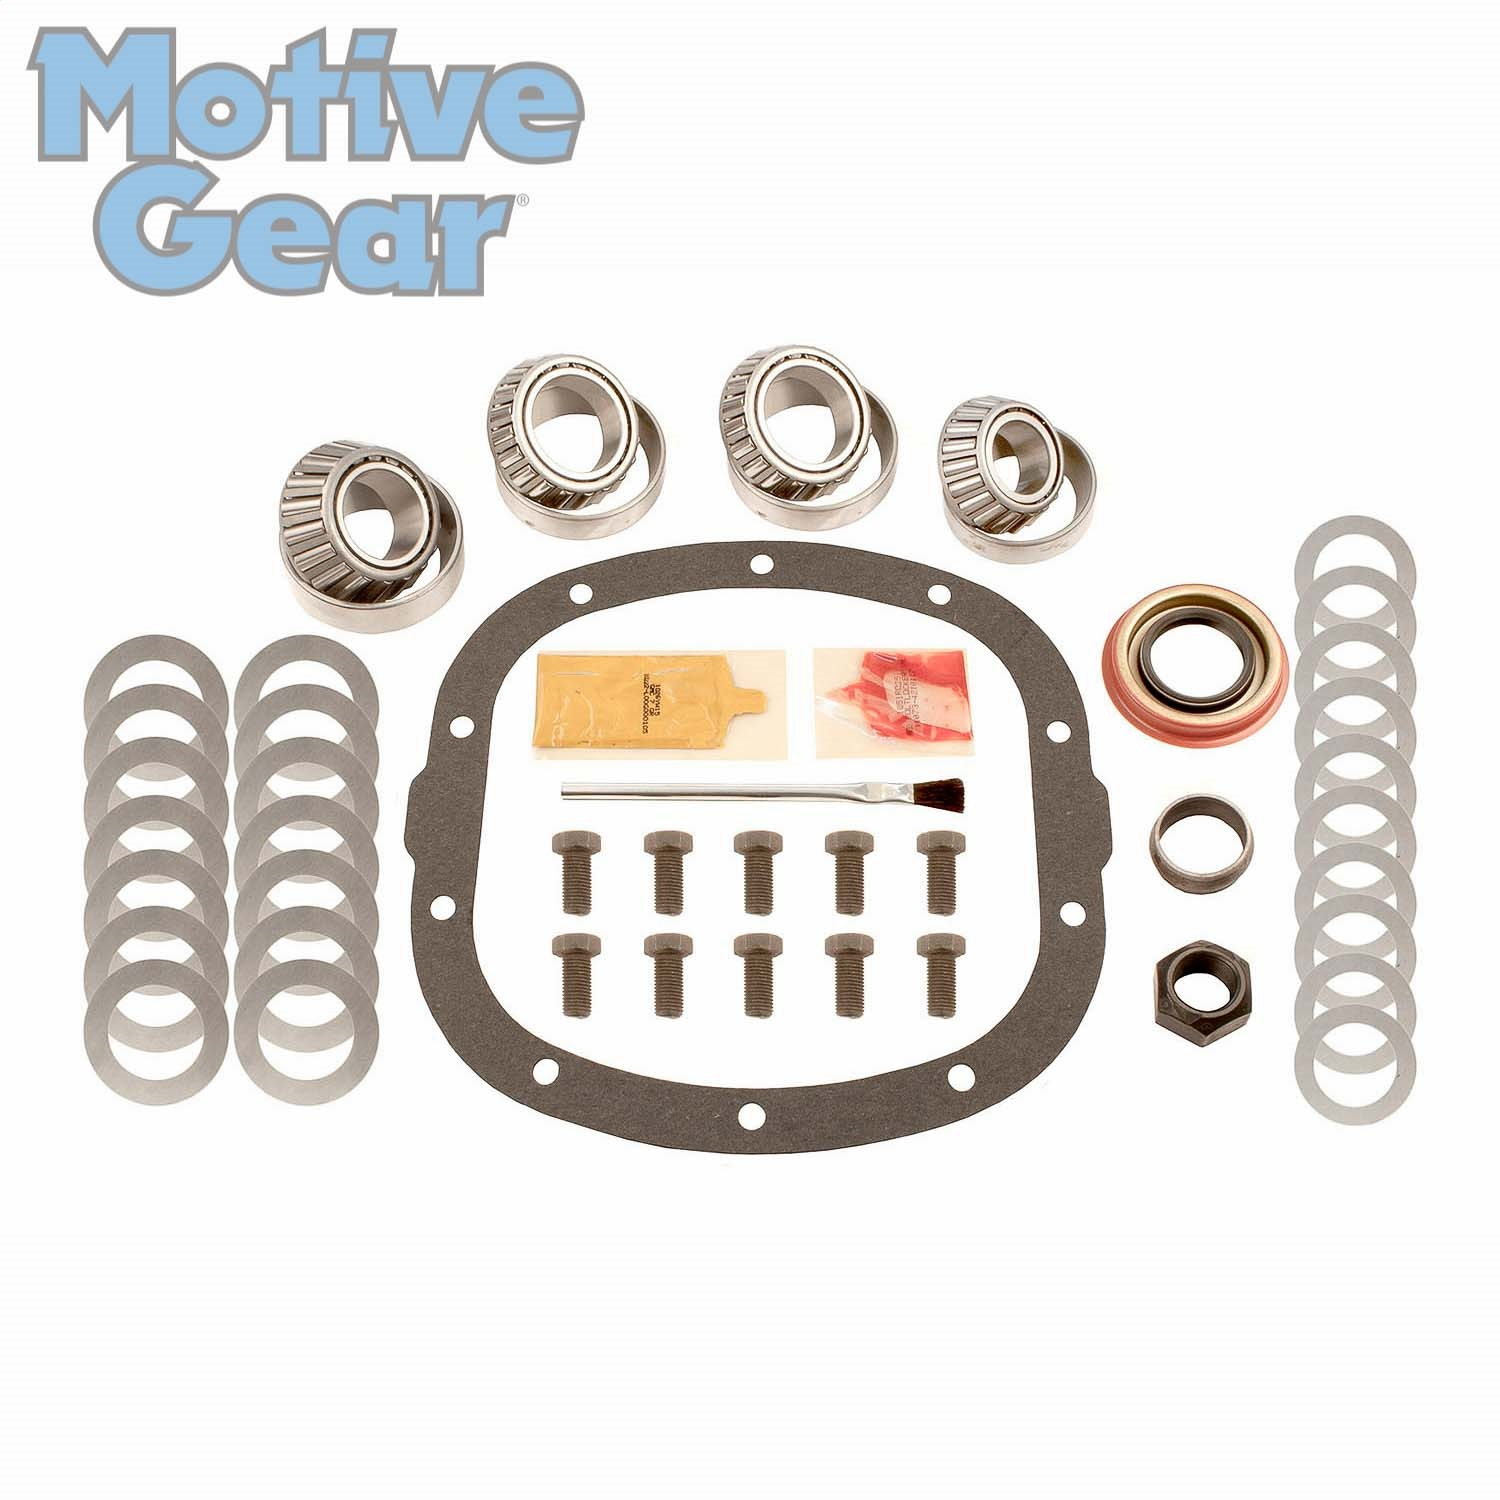 Motive Gear R7.5GRBMK MOGR7.5GRBMK GM 7.5B CAR W METRIC HOUSING MASTER BEARING KIT 1978-87